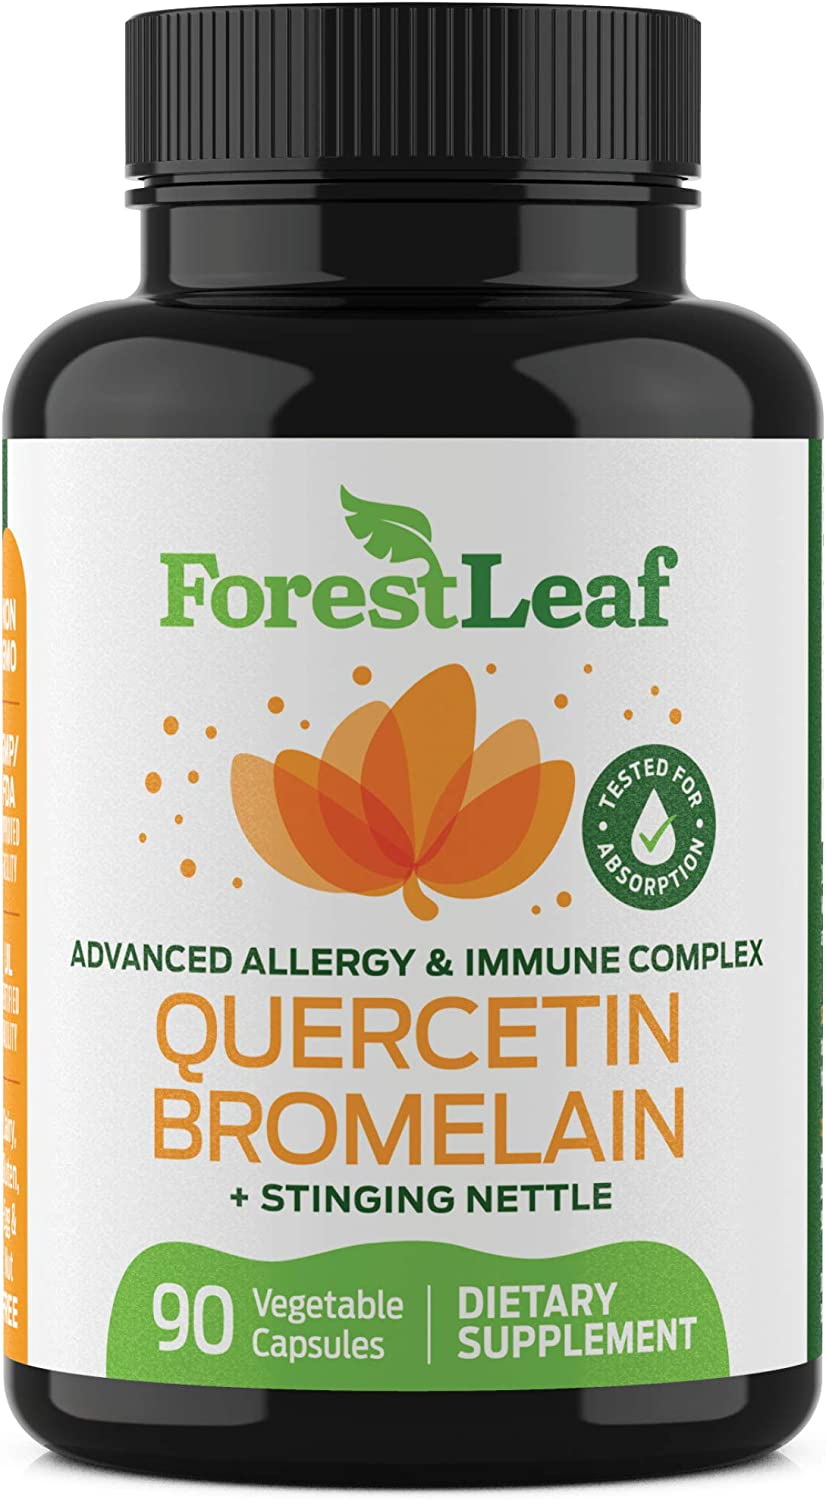 Advanced Sinus and Allergy Supplement – Quercetin Bromelain with Stinging Nettle and Vitamin C – 90 Natural Vegetable Capsules – Non GMO, Dairy, Gluten, Egg and Nut Free - by ForestLeaf: Health & Personal Care